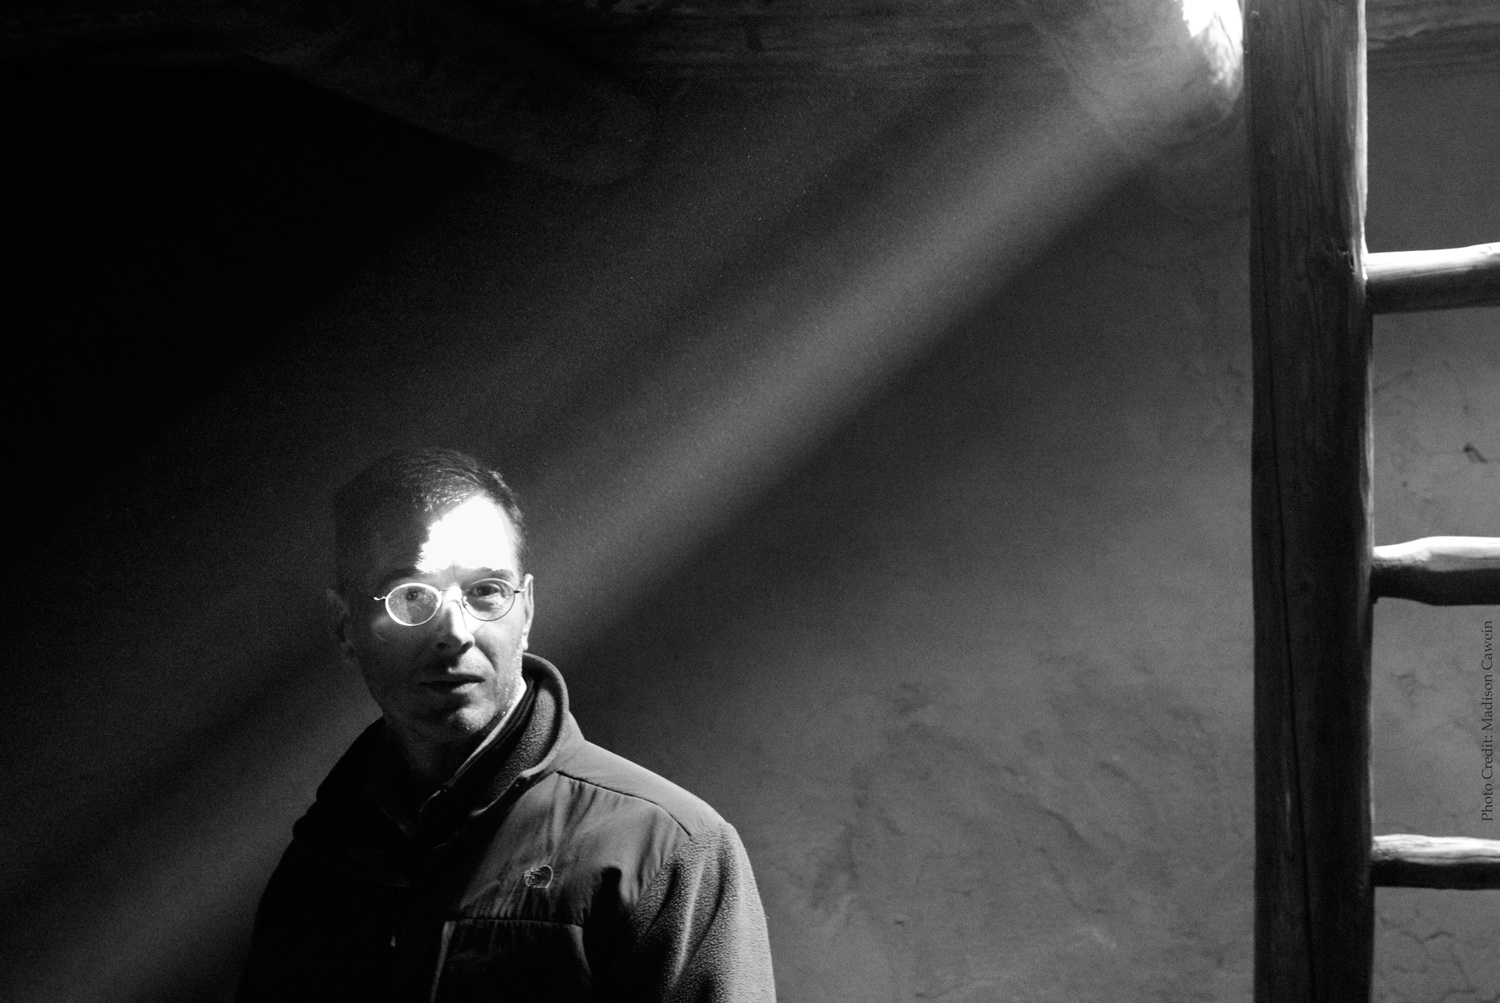 Matt Gatton in subterranean chamber (photo credit: Madison Cawein).